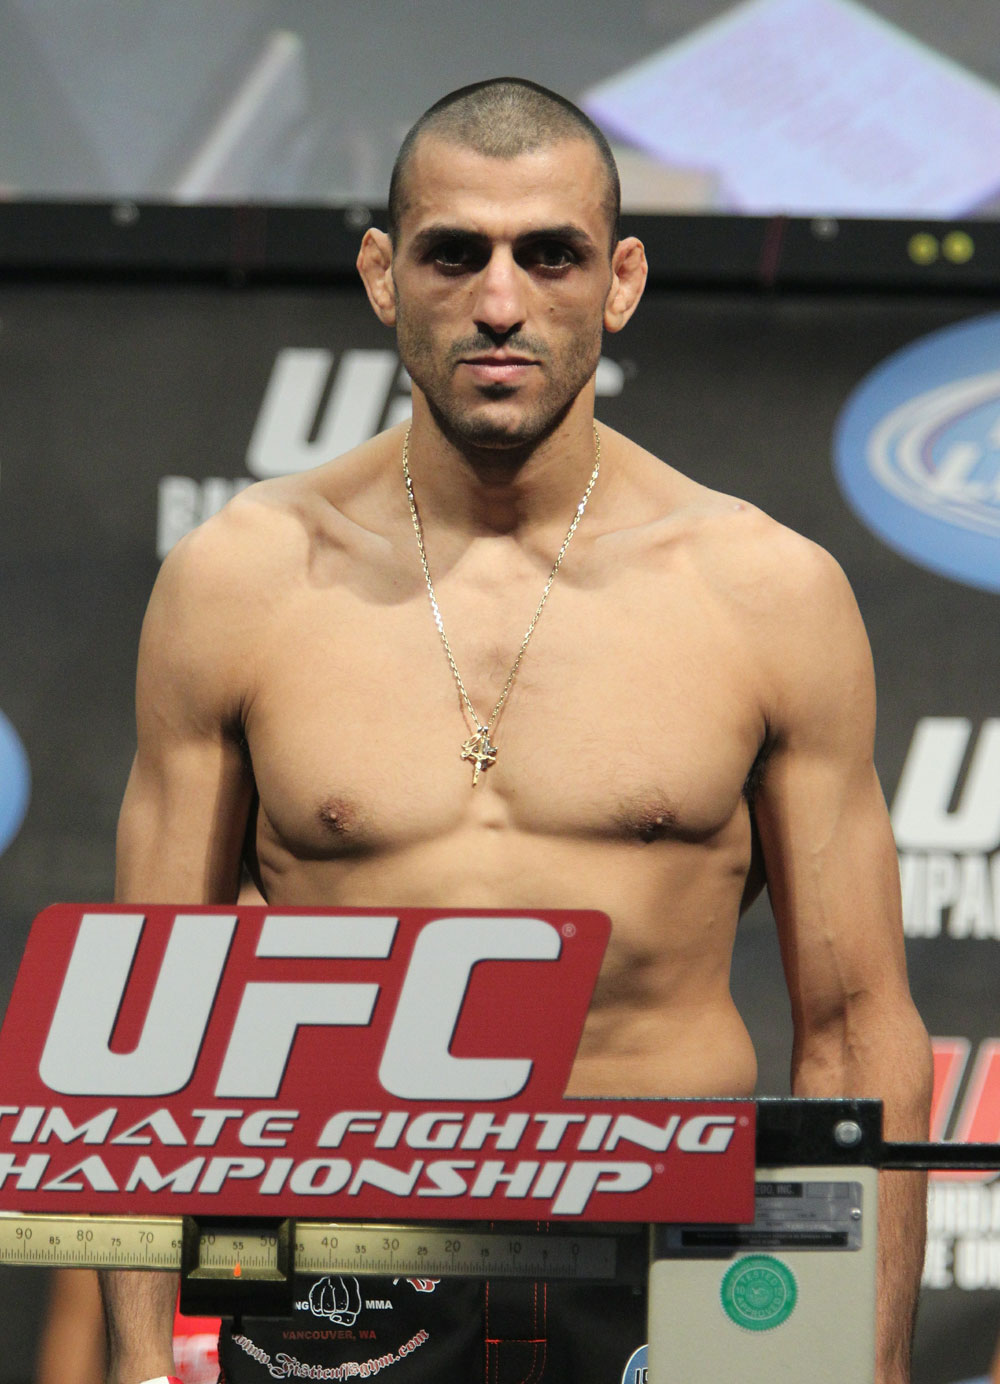 George Sotiropoulos weighs in at 155 lbs at the UFC 123 weigh-in at the Palace of Auburn Hills on November 19, 2010 in Auburn Hills, Michigan.  (Photo by Josh Hedges/Zuffa LLC/Zuffa LLC via Getty Images)